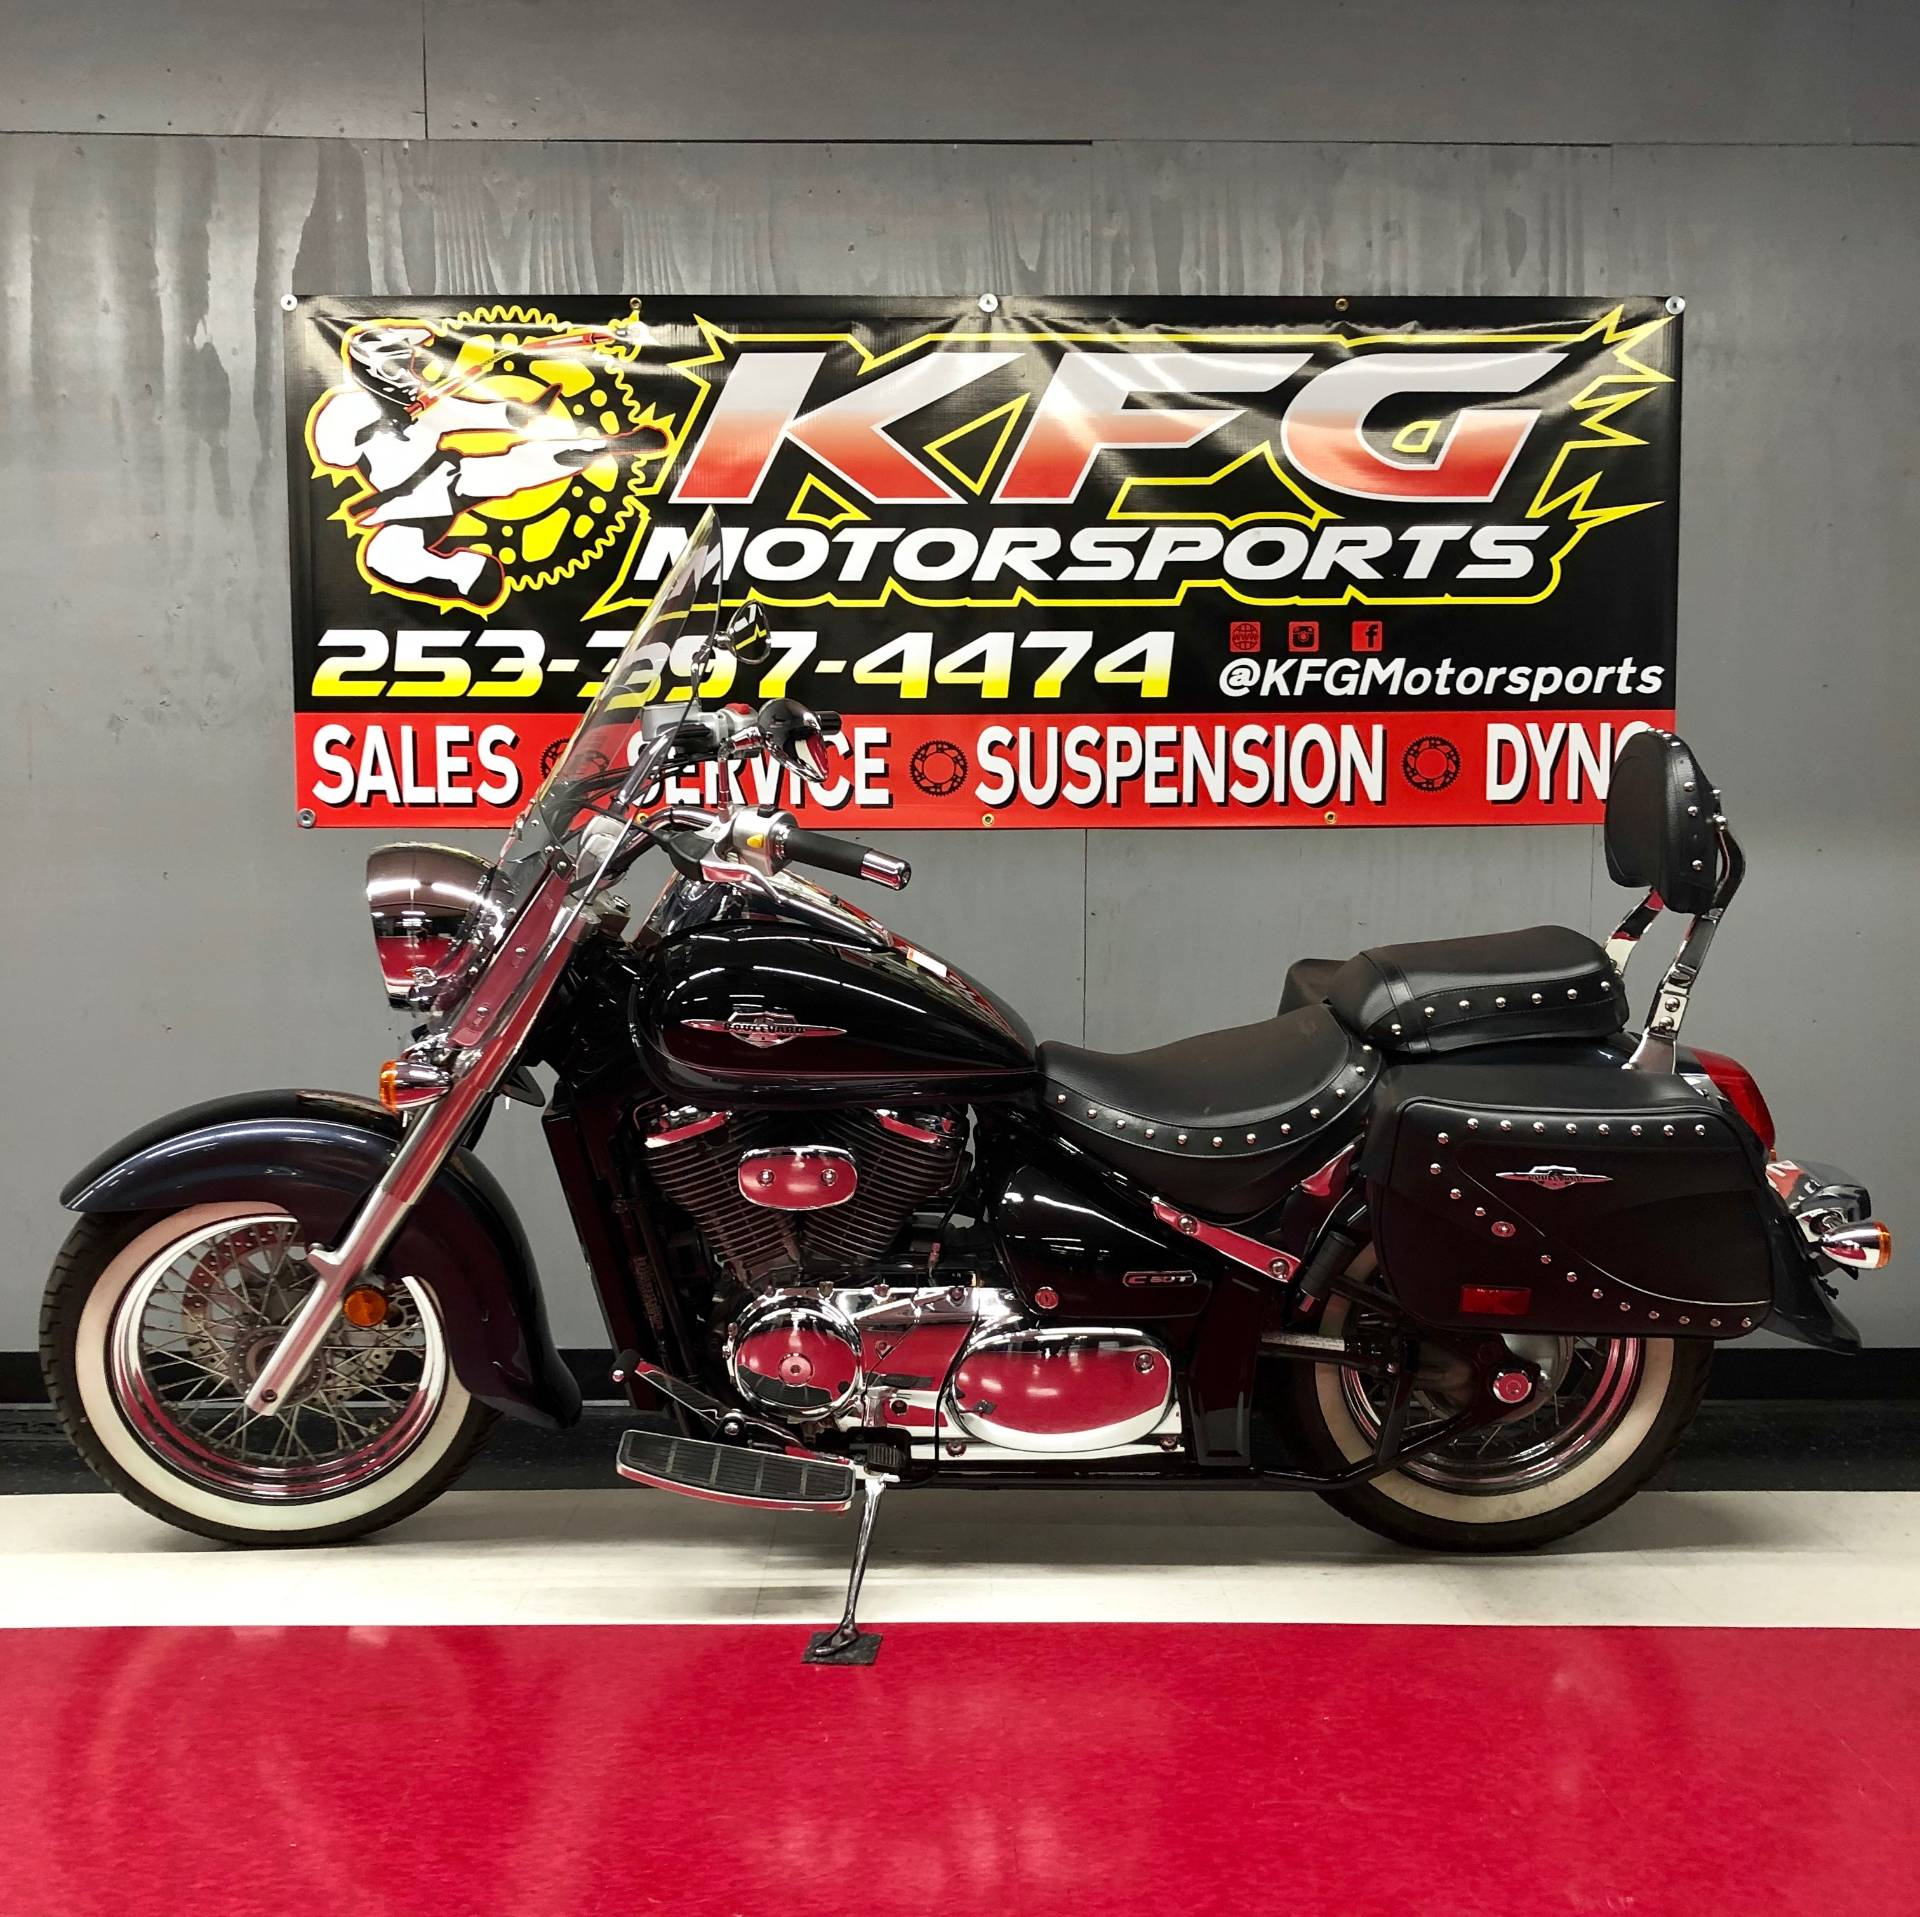 2011 Suzuki Boulevard C50T in Auburn, Washington